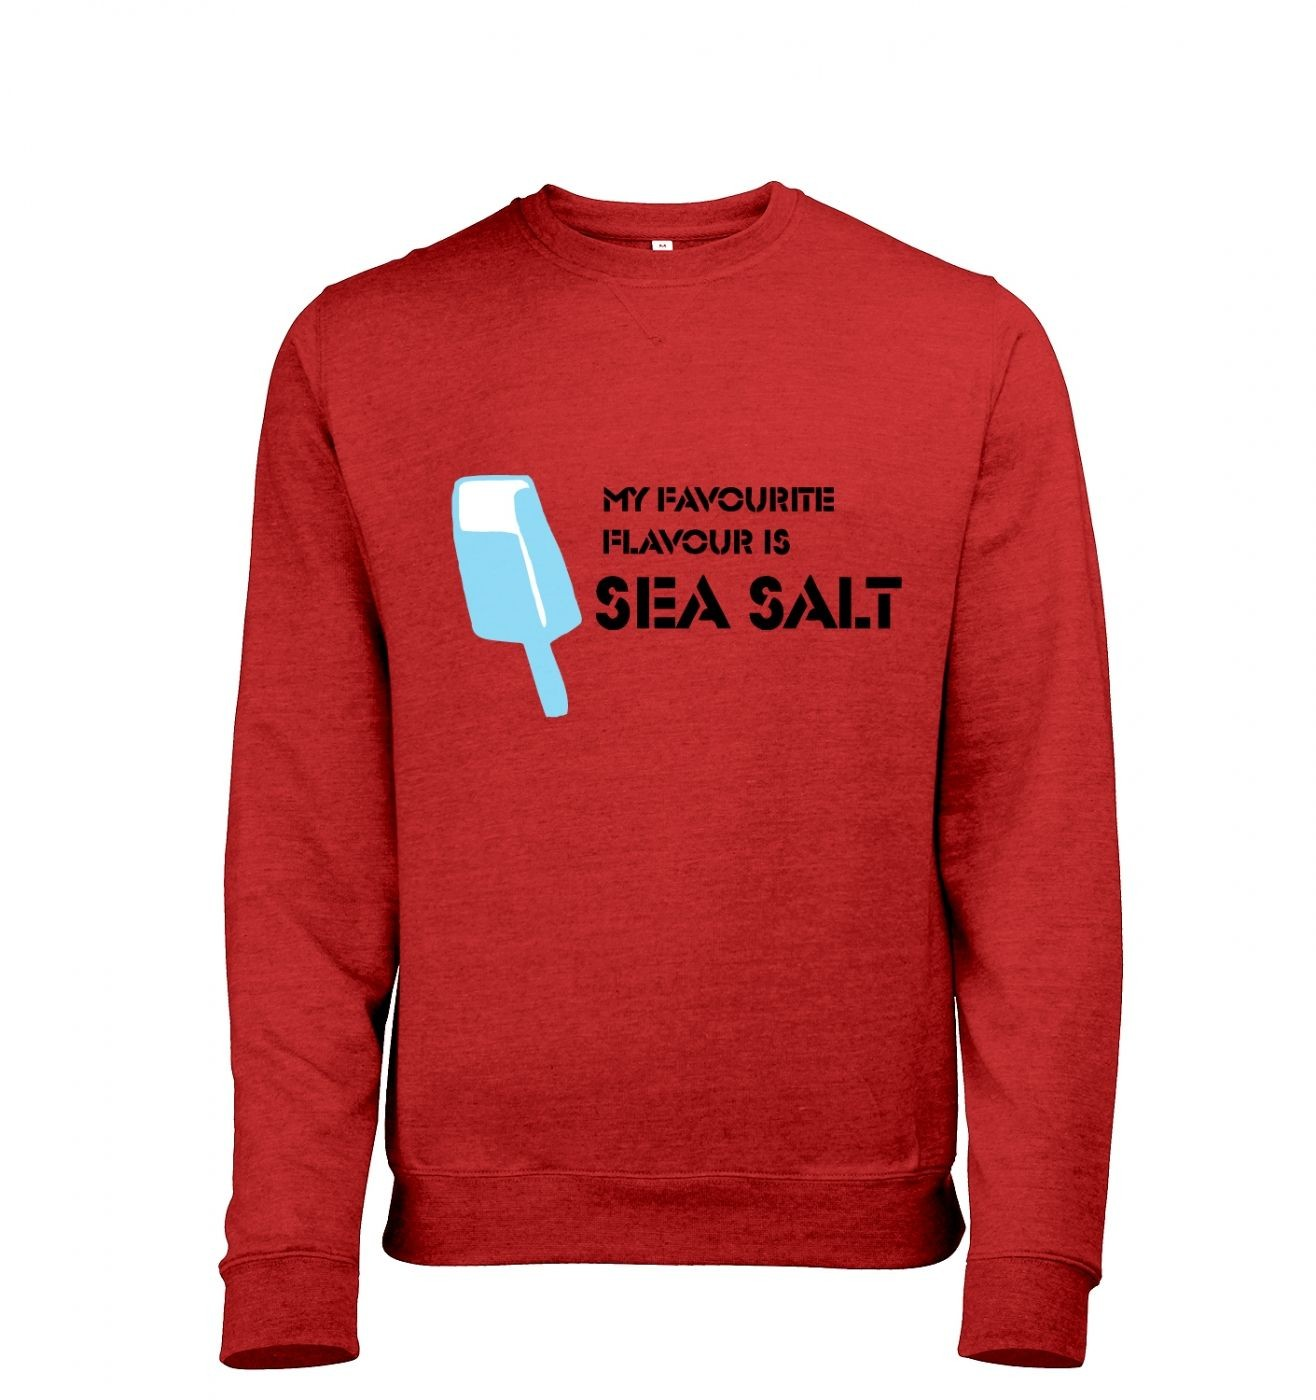 Sea Salt Ice Cream men's heather sweatshirt